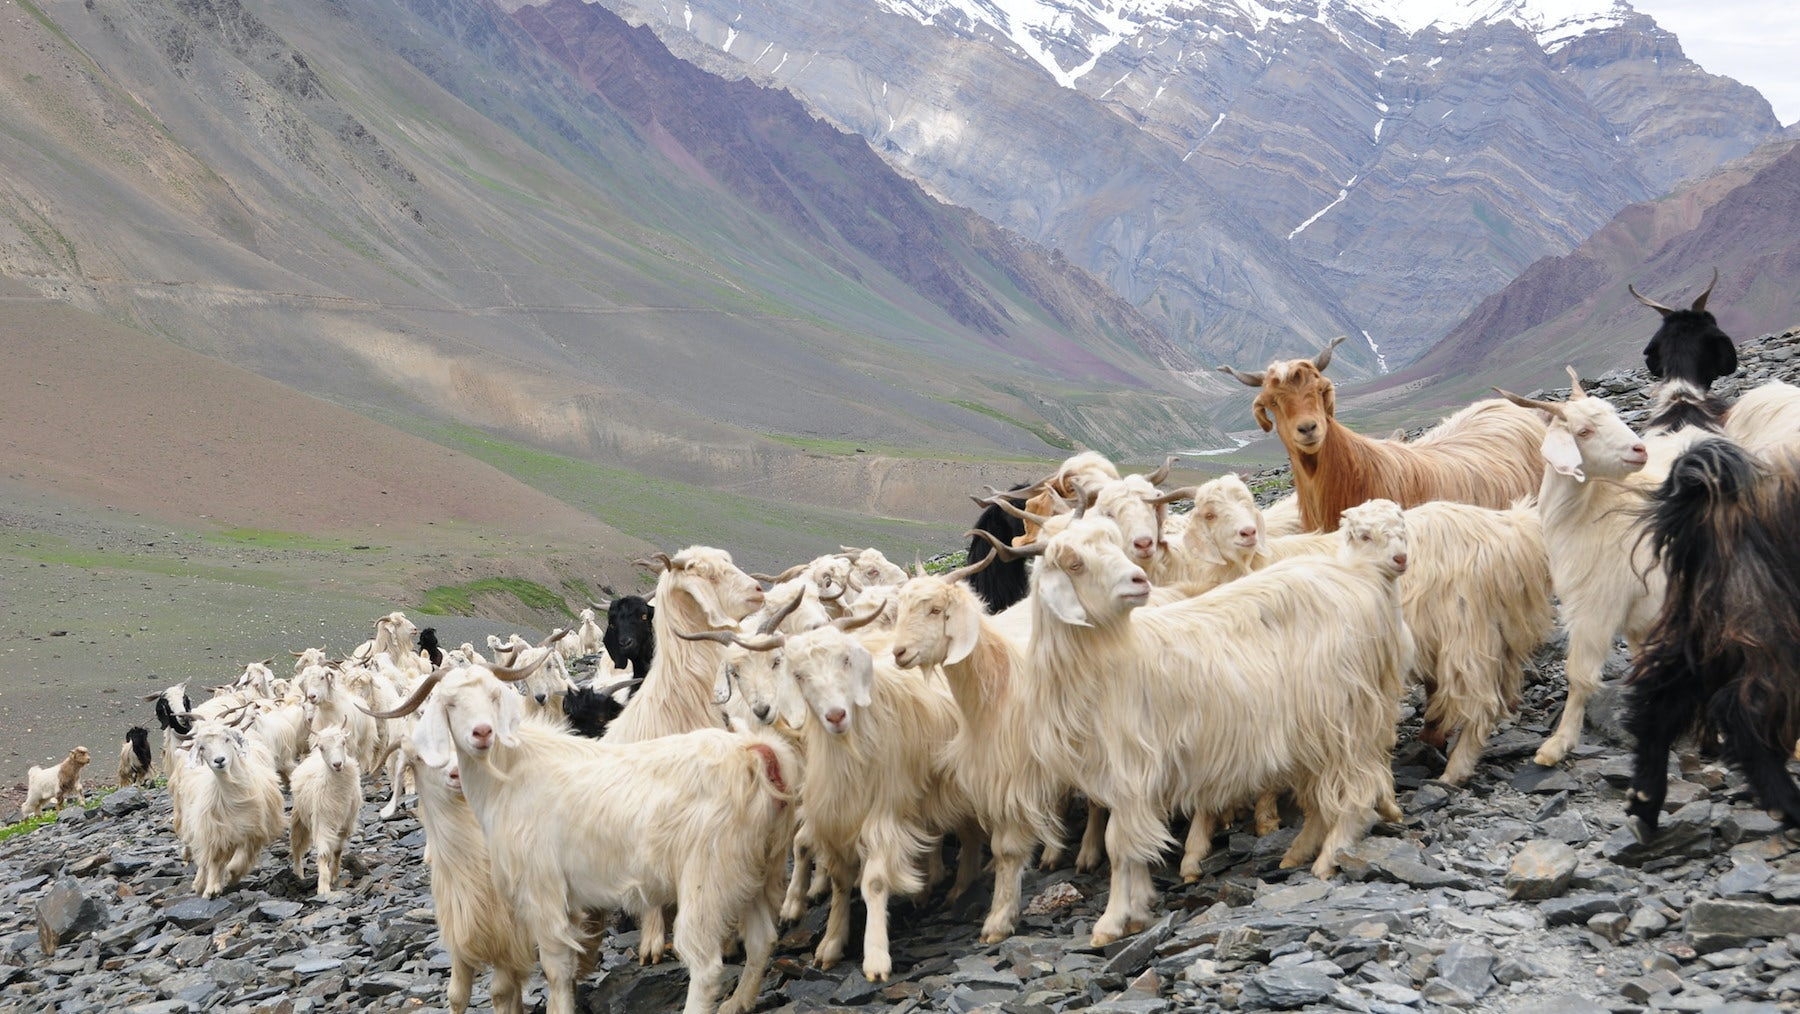 Cashmere goats | Source: Flickr/Jelle Visser